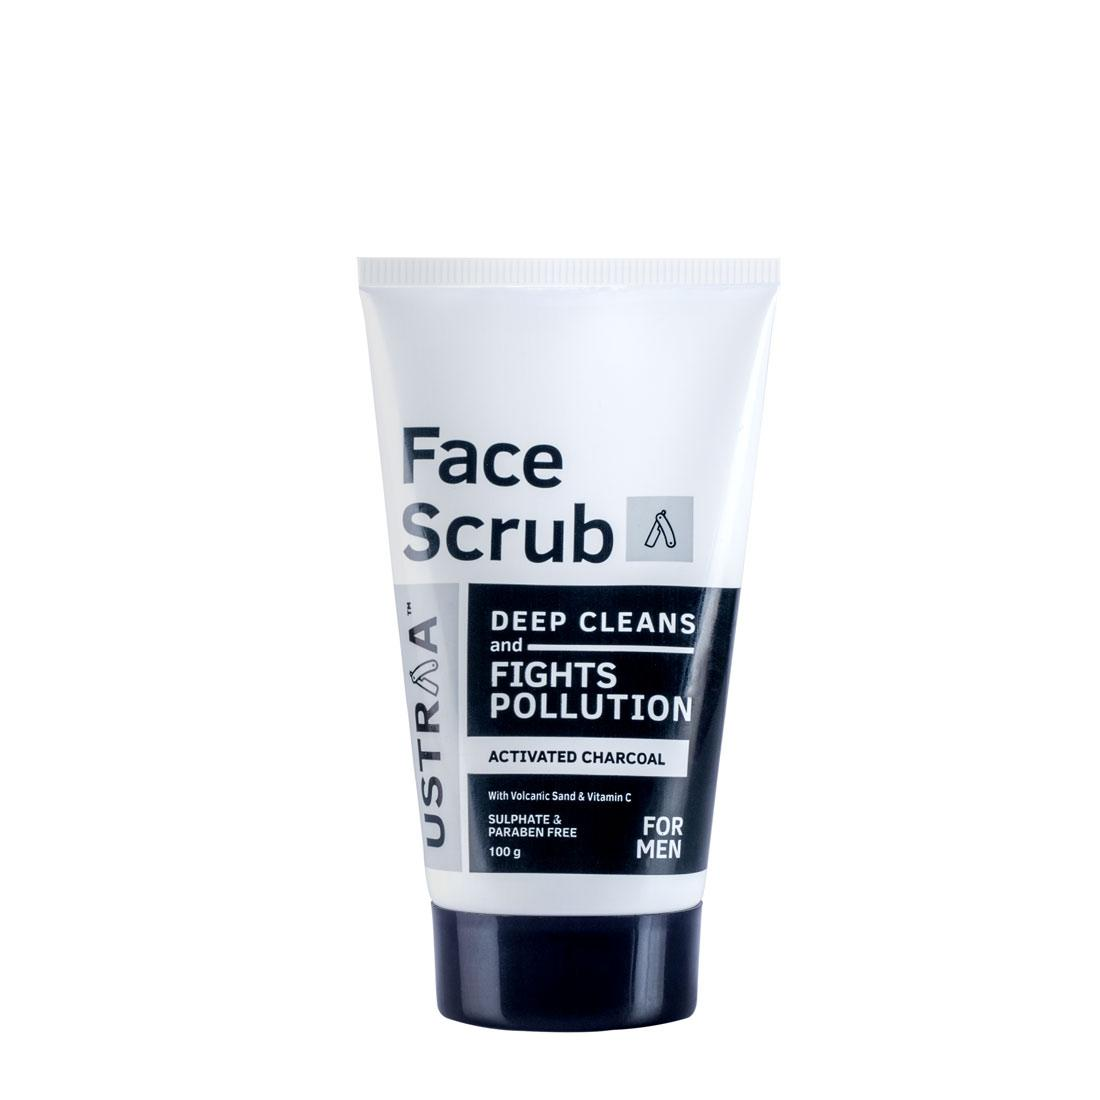 Ustraa Activated Charcoal Face Scrub 100 g - A Face Scrub for men with Volcanic Sand and Walnut Granules to free your skin of Toxins and Pollution